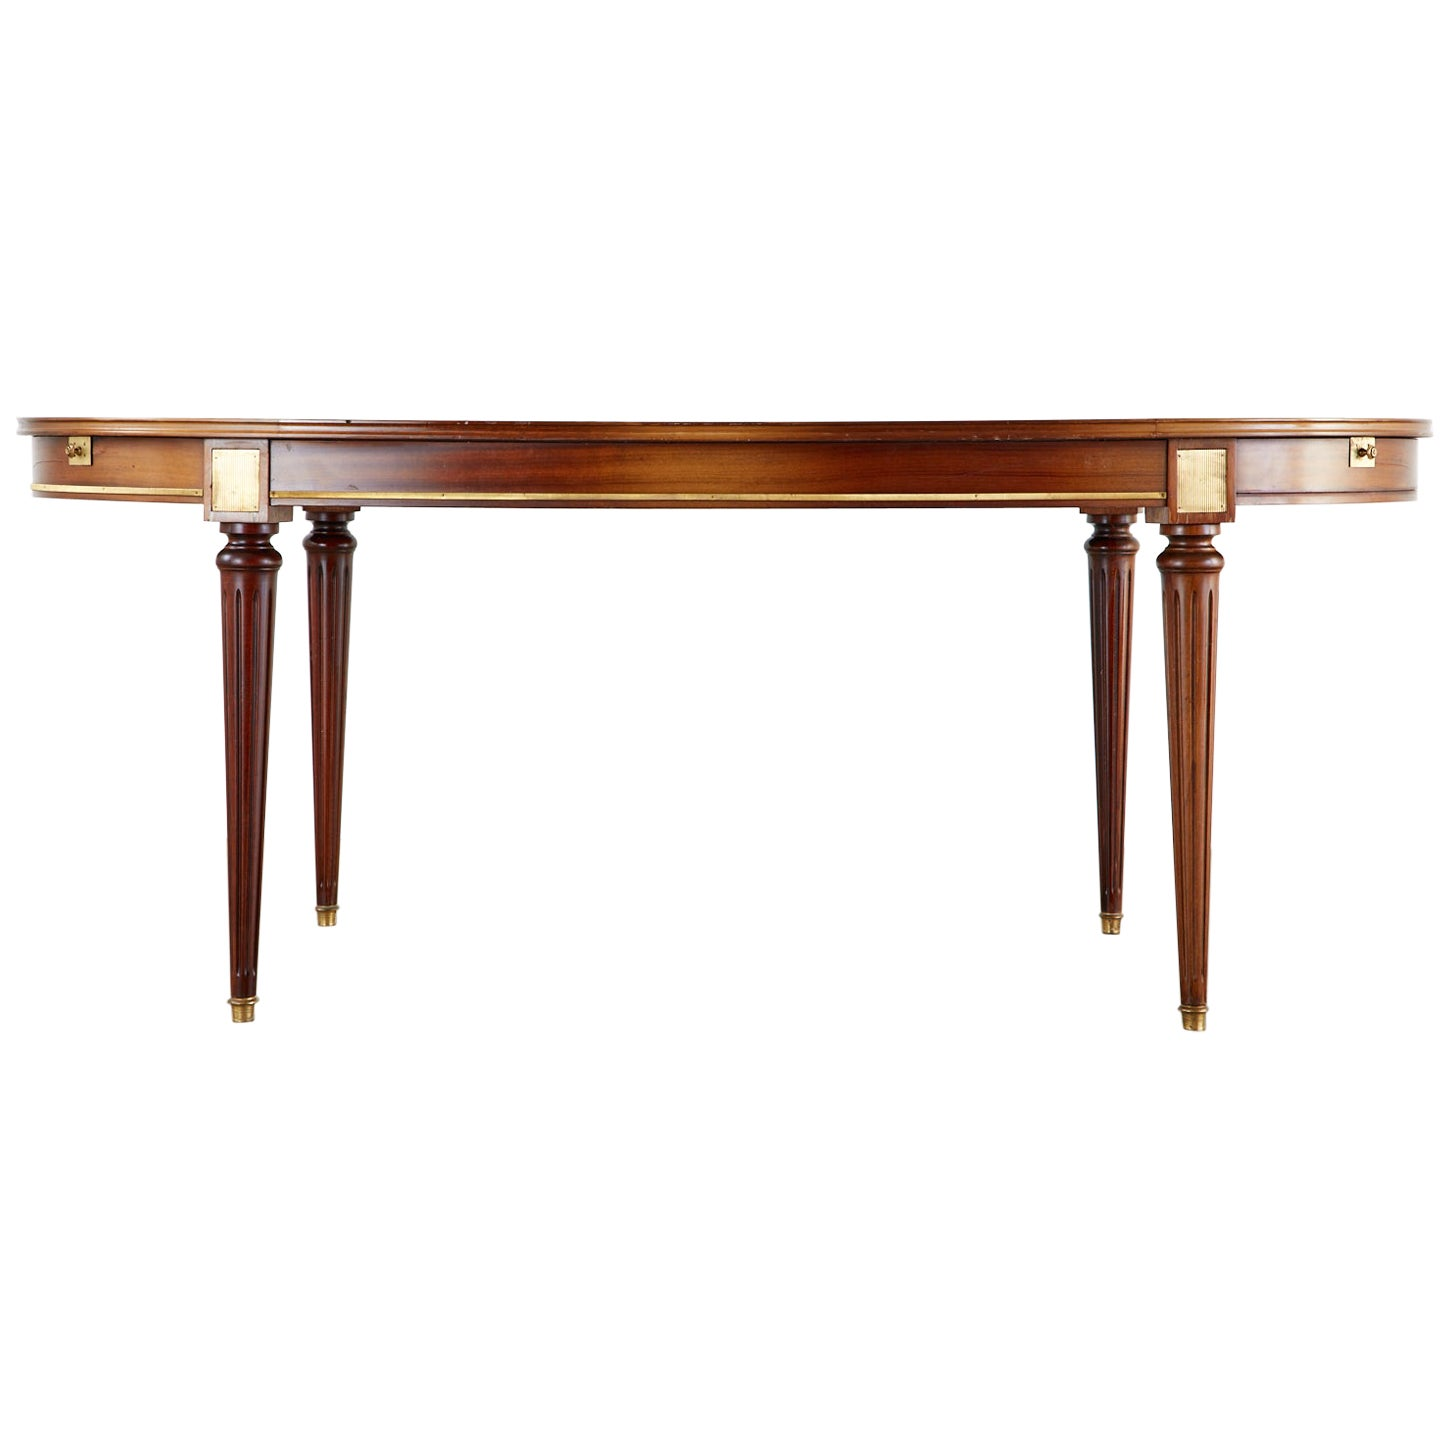 French Louis XVI Style Mahogany Dining Table with Leaves